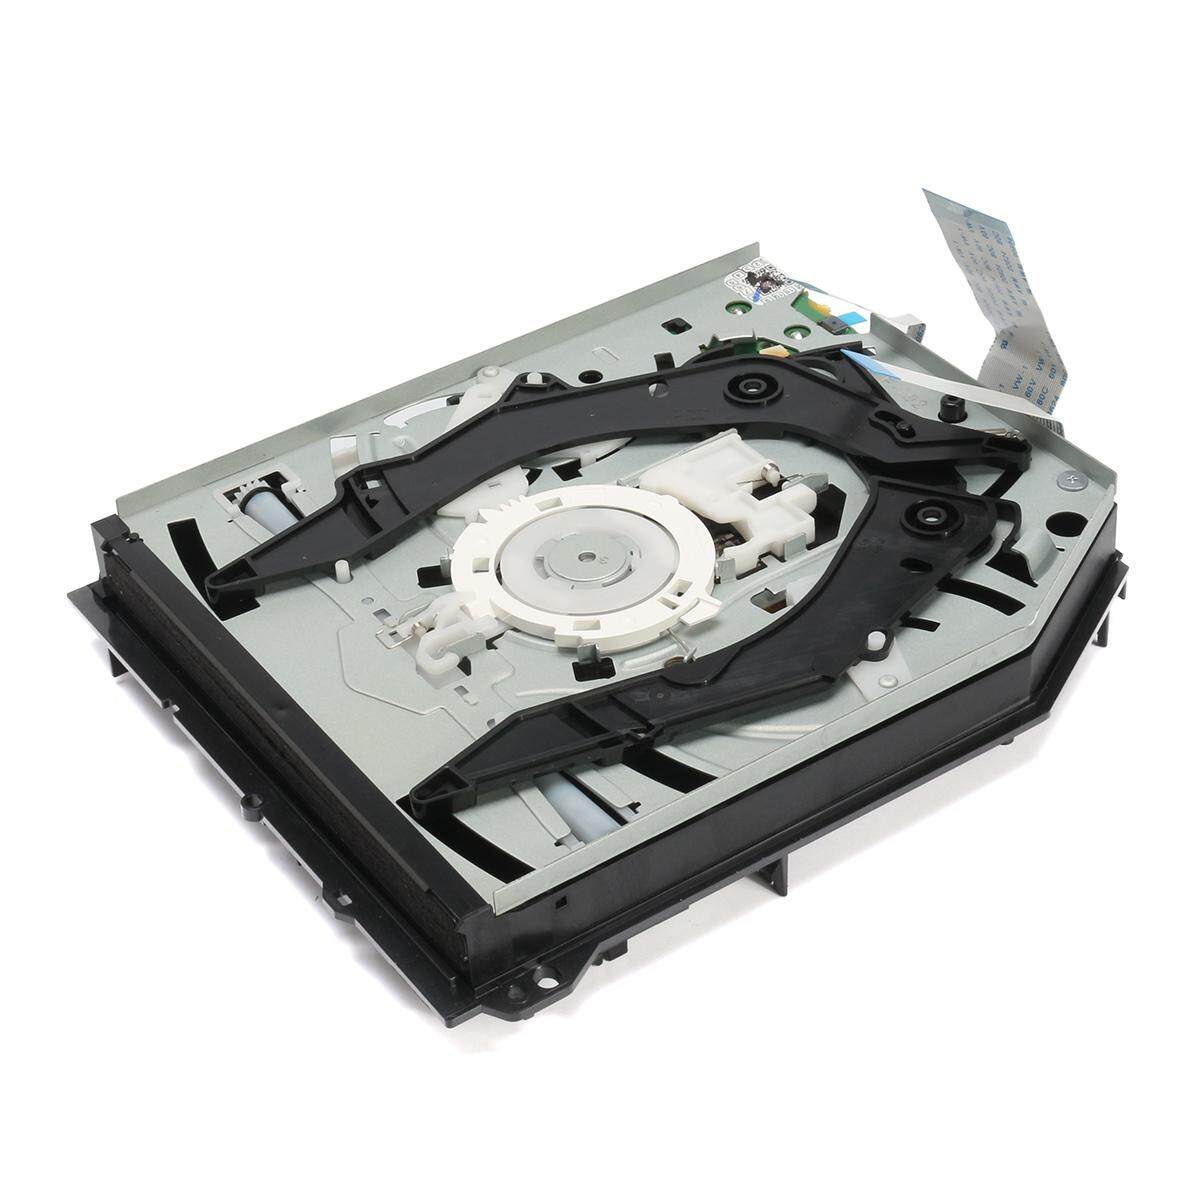 Blu-ray Disk CD Drive Replacement Part for Sony PS4 CUH-1215A CUH-1215B  500GB 1TB